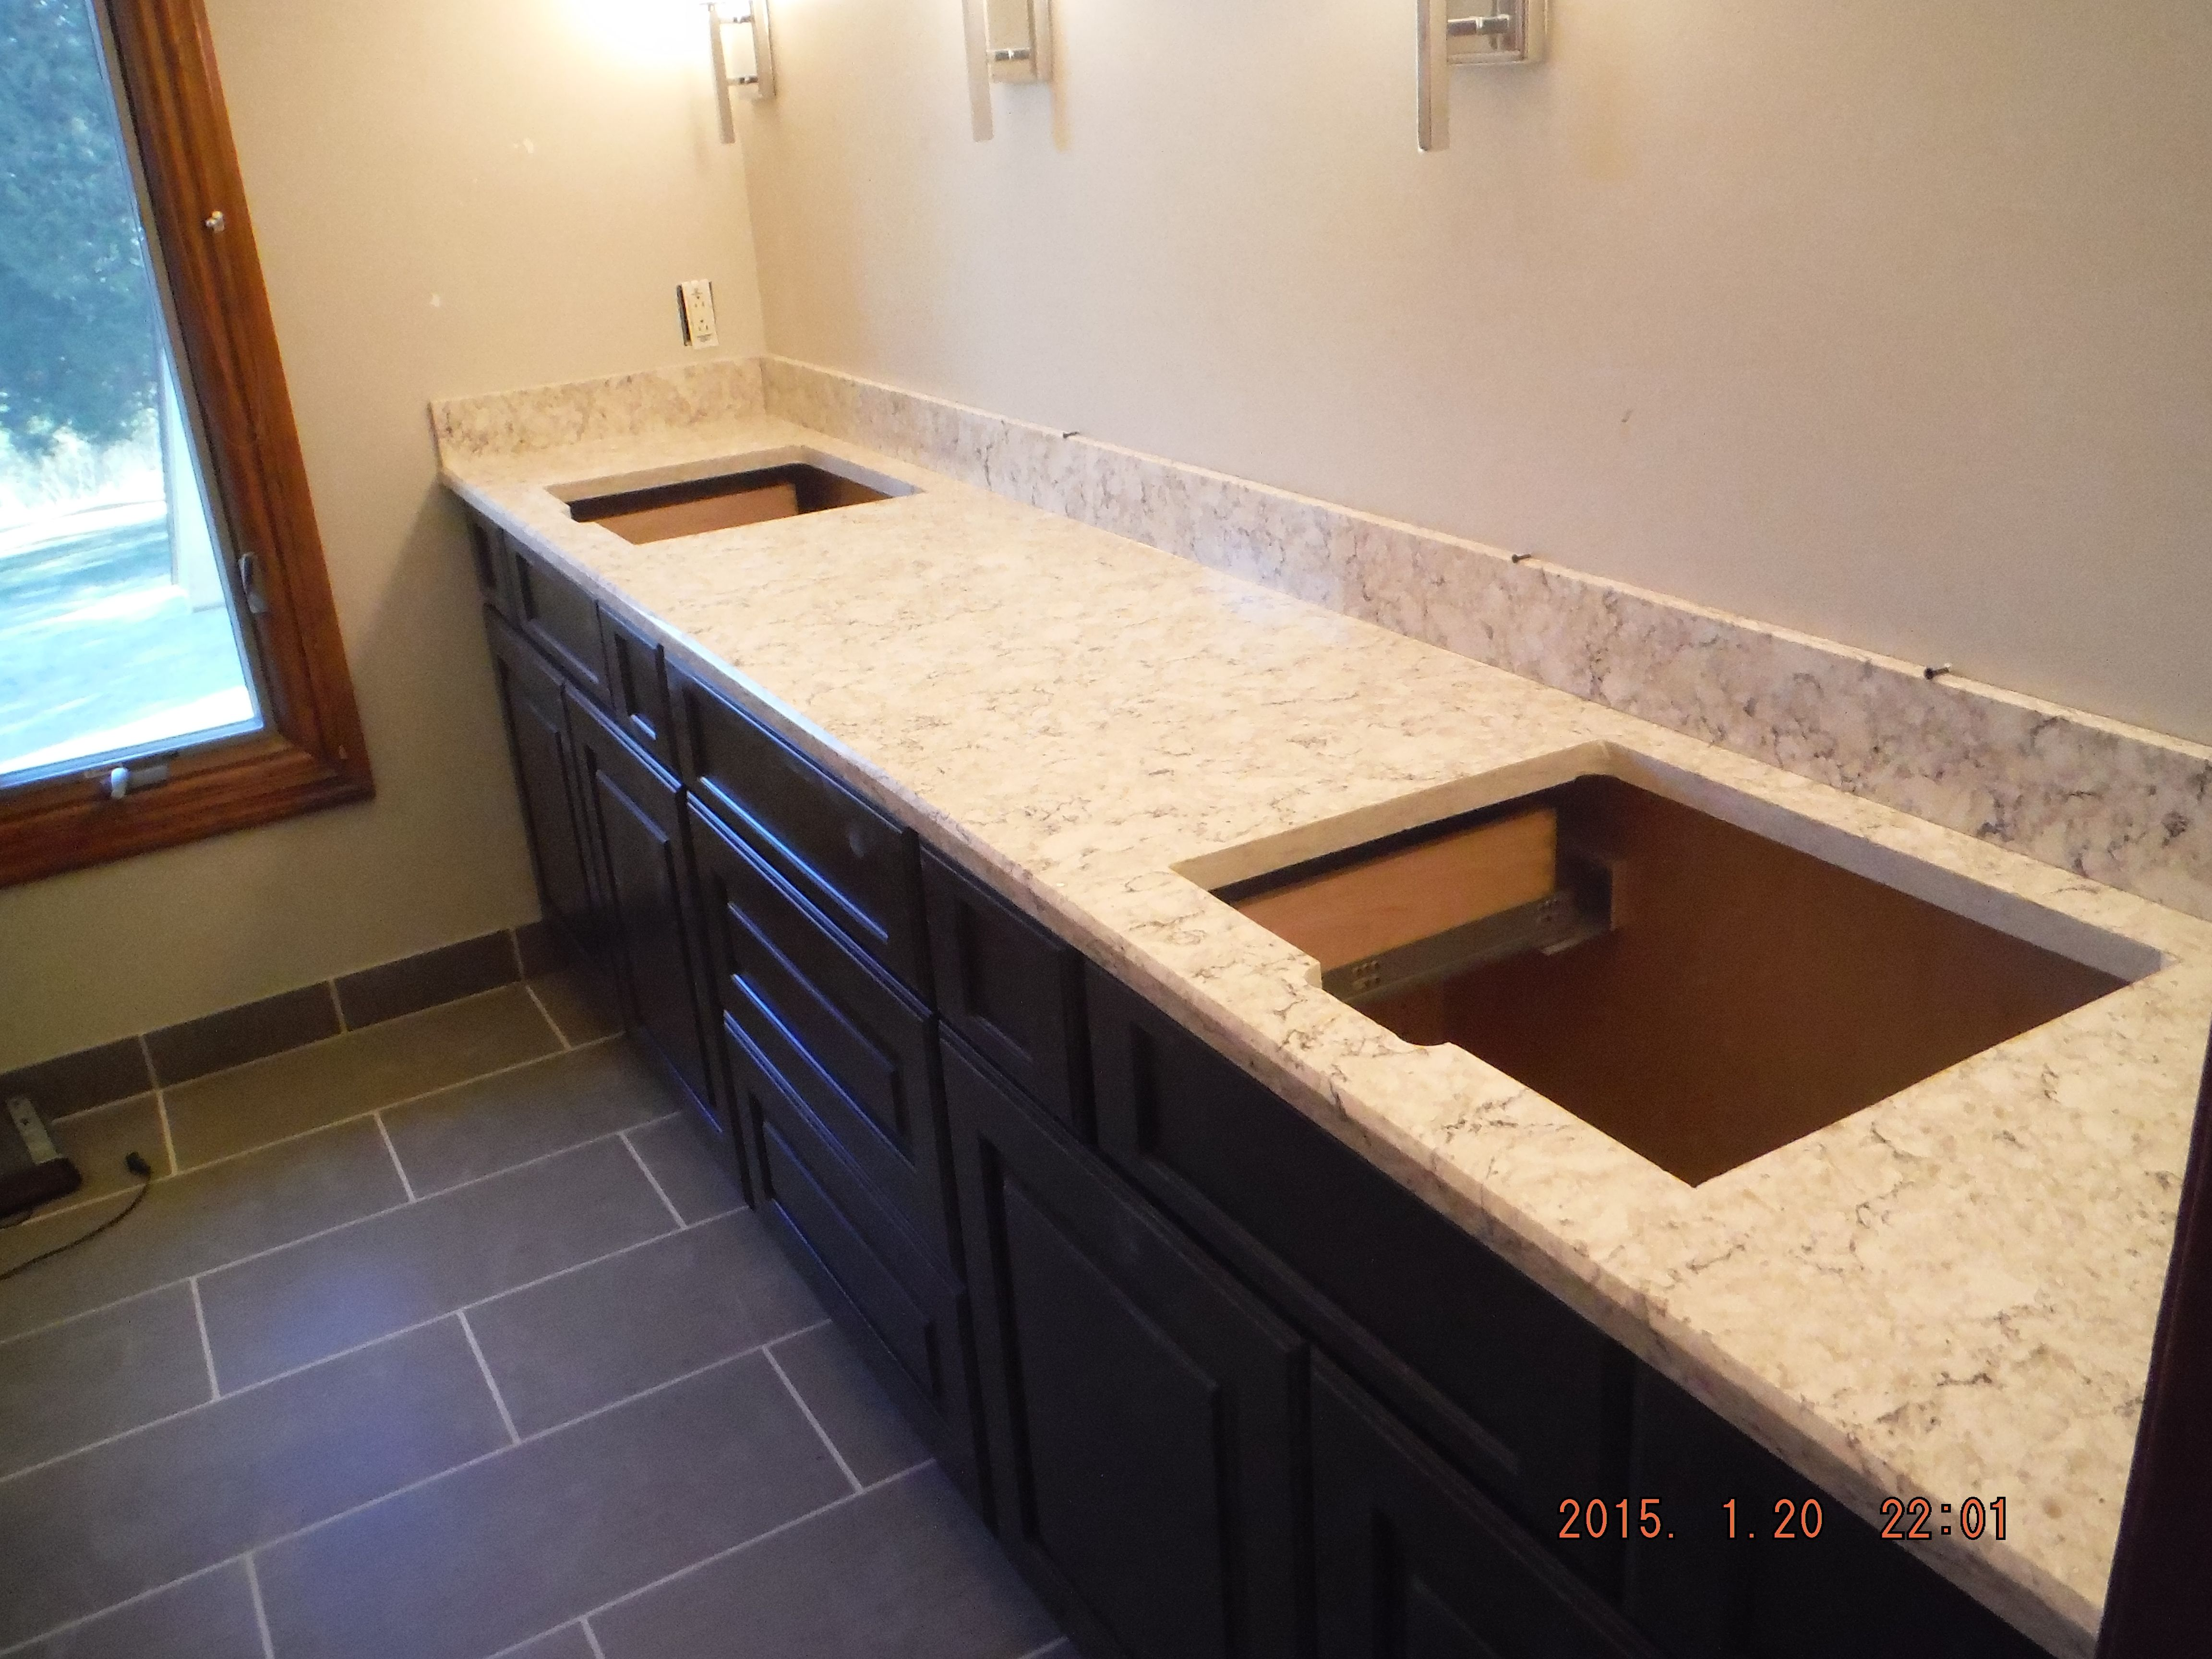 How Much Are Quartz Countertops Installed Lg Viatera Aria Quartz Kitchen Install For The Foster